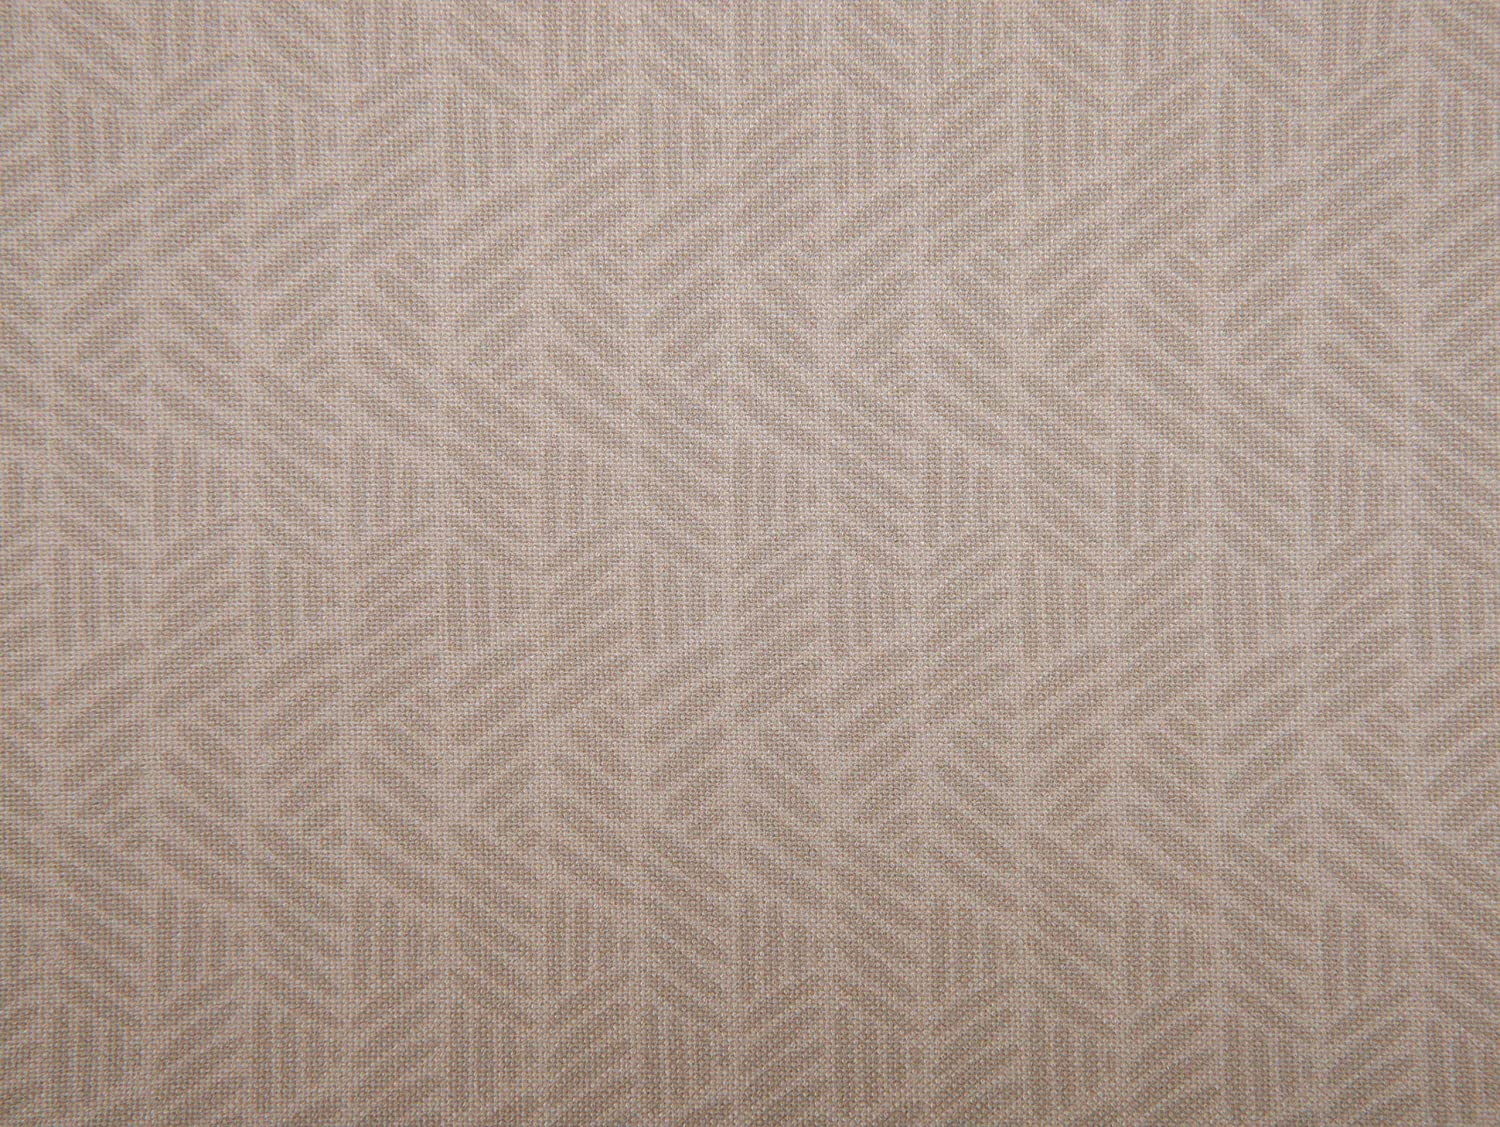 COTTONVILL MALLANGLUNA Collection Weave 20COUNT Cotton Print Quilting Fabric (1yard, 05-Sandshell)